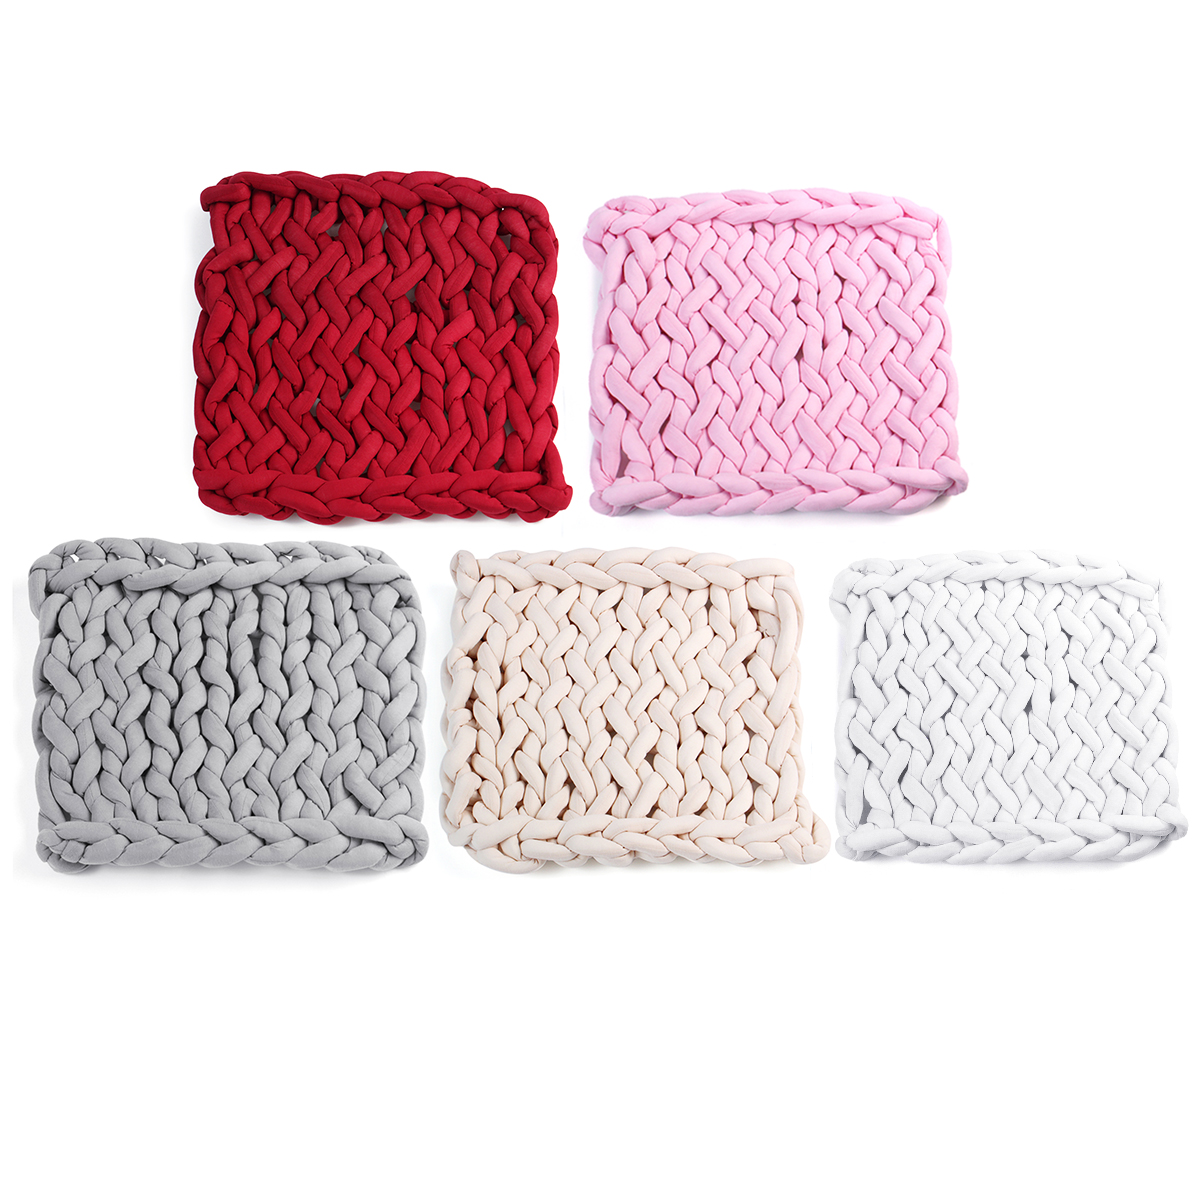 50 X 50Cm Handmade Knitted Blanket Cotton Soft Washable Lint-Free Throw Multicolored Thick Thread Blankets